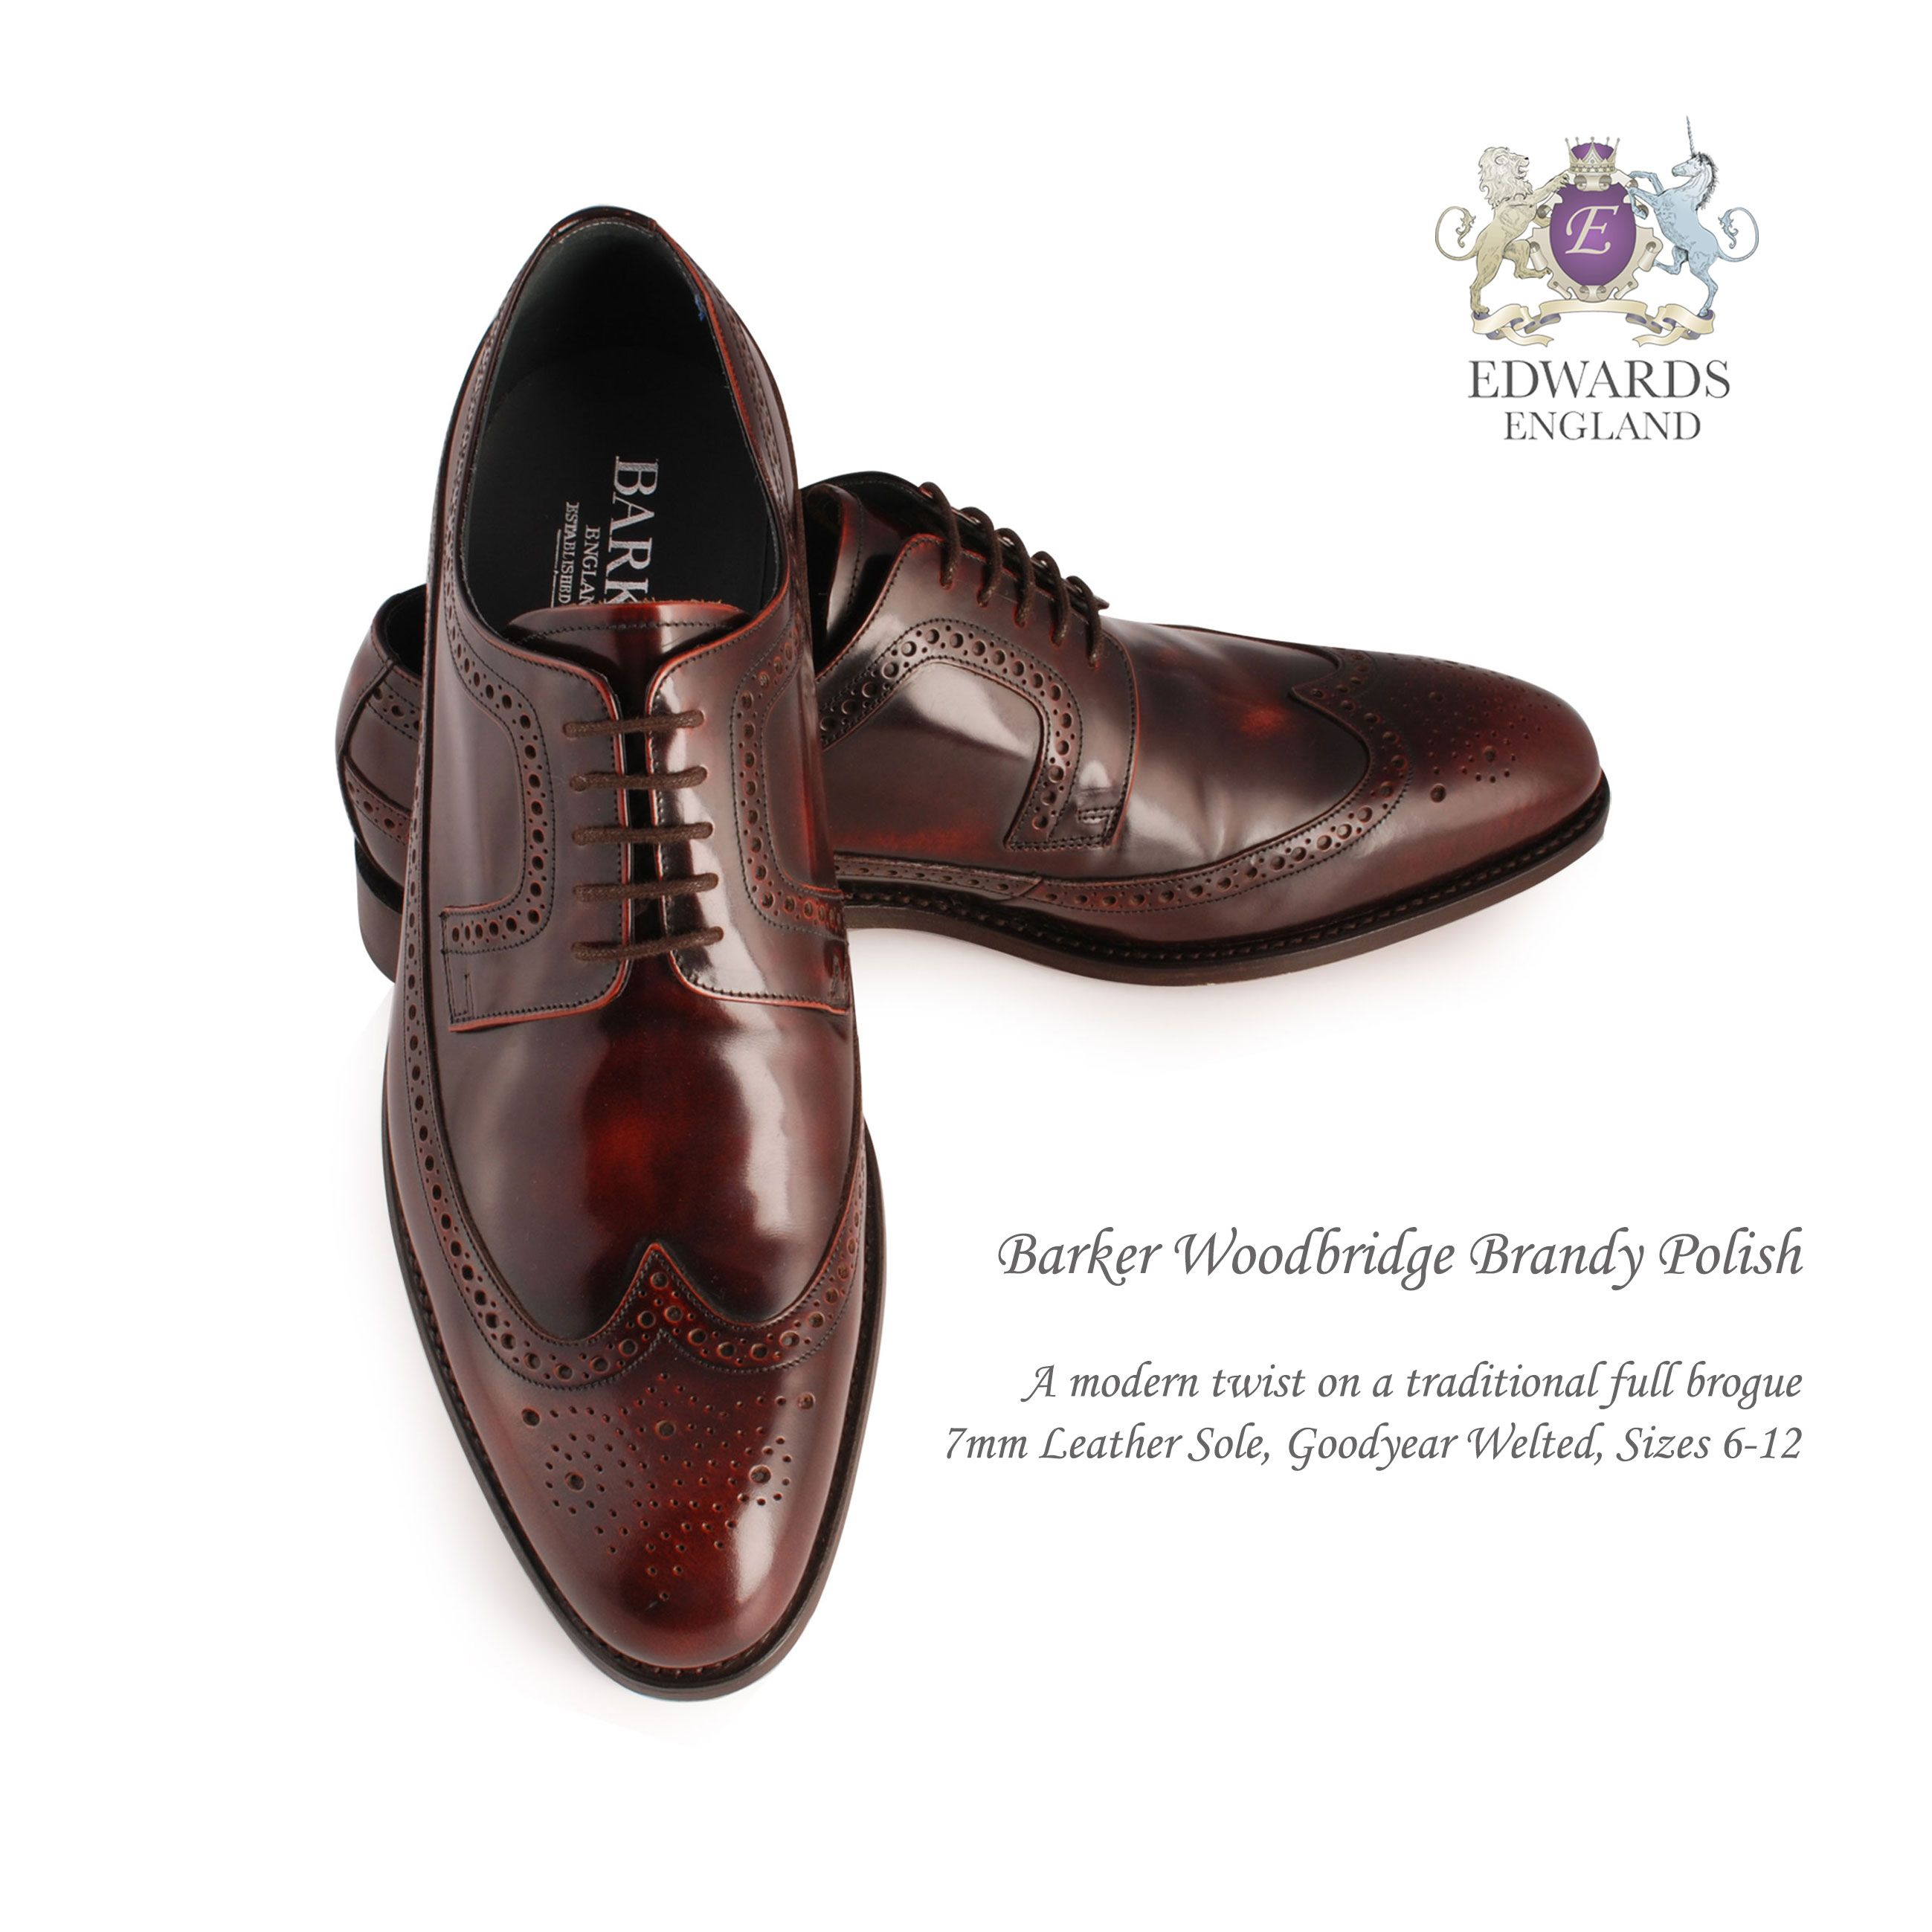 Full-Brogue Oxford in Brandy WKmodCk5w4